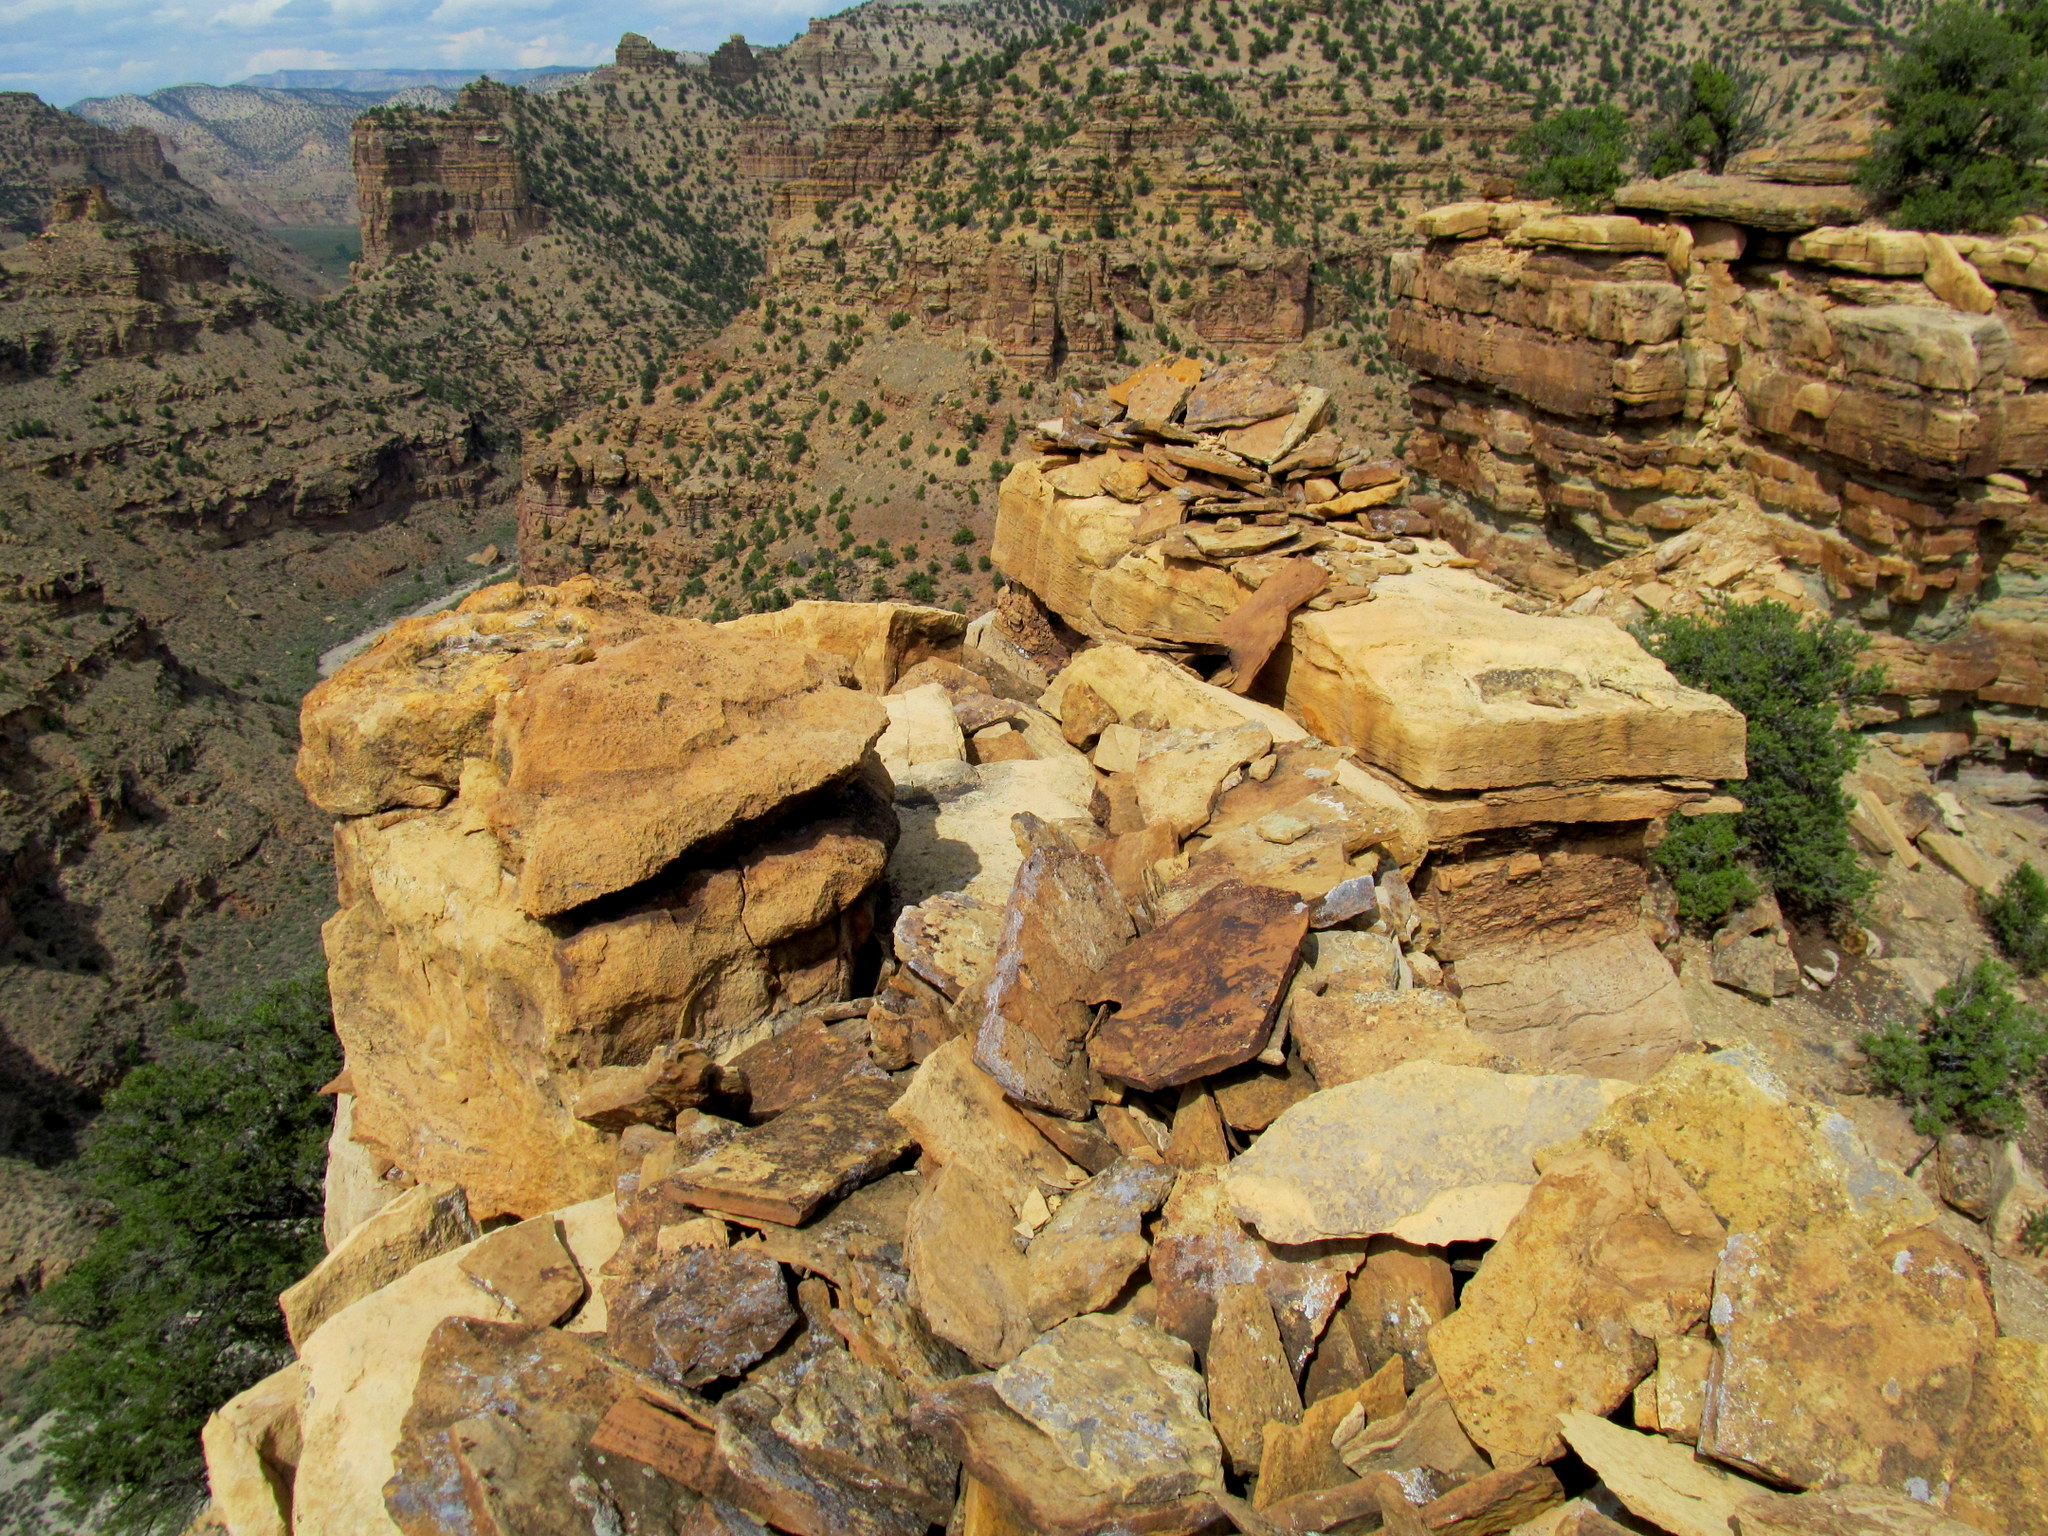 Photo: Fallen rock walls on the edge of the butte